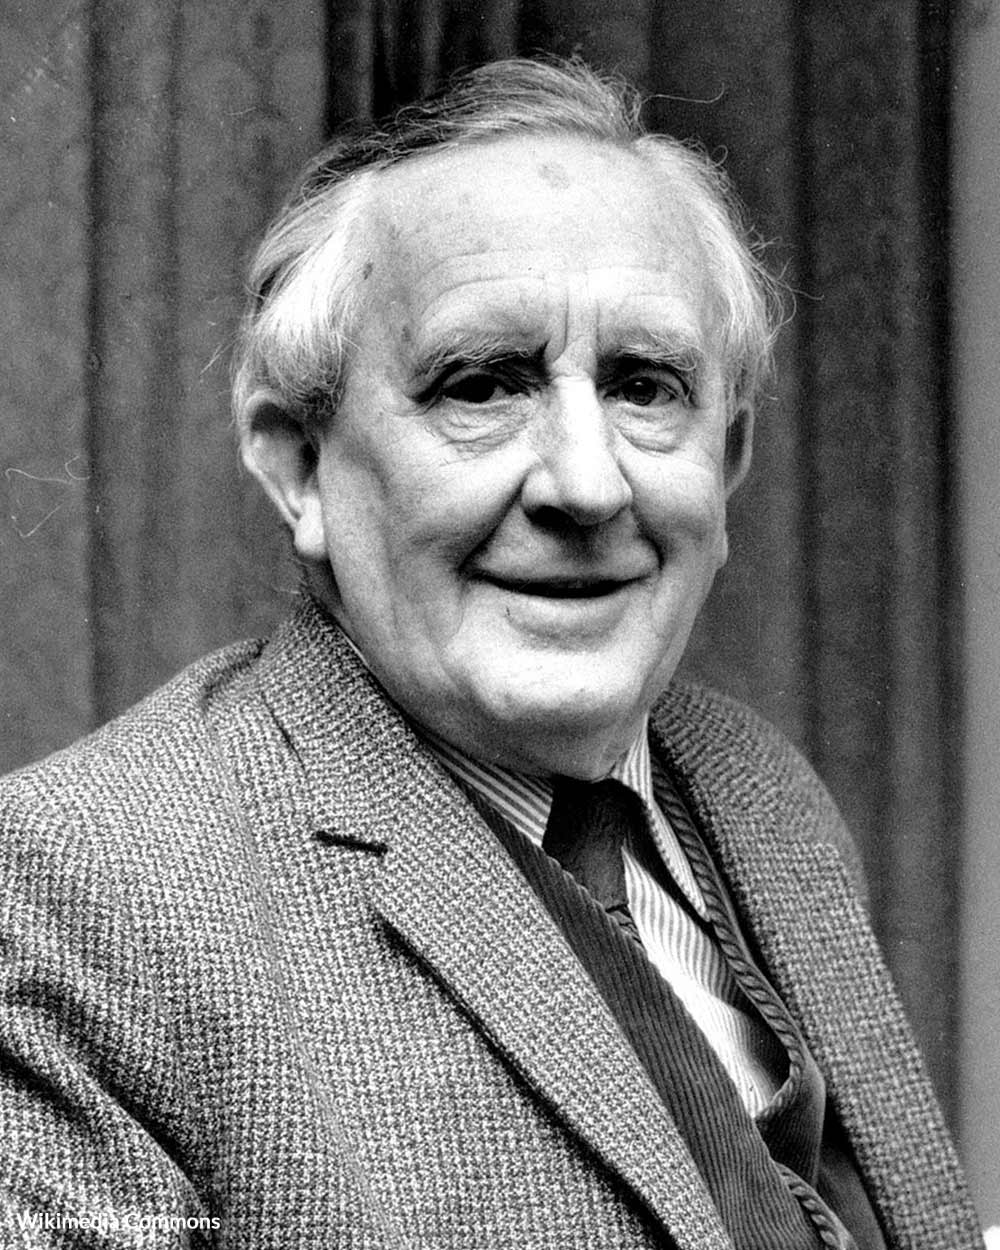 J.R.R. Tolkien is yet remembered as one of the finest authors of English literature.